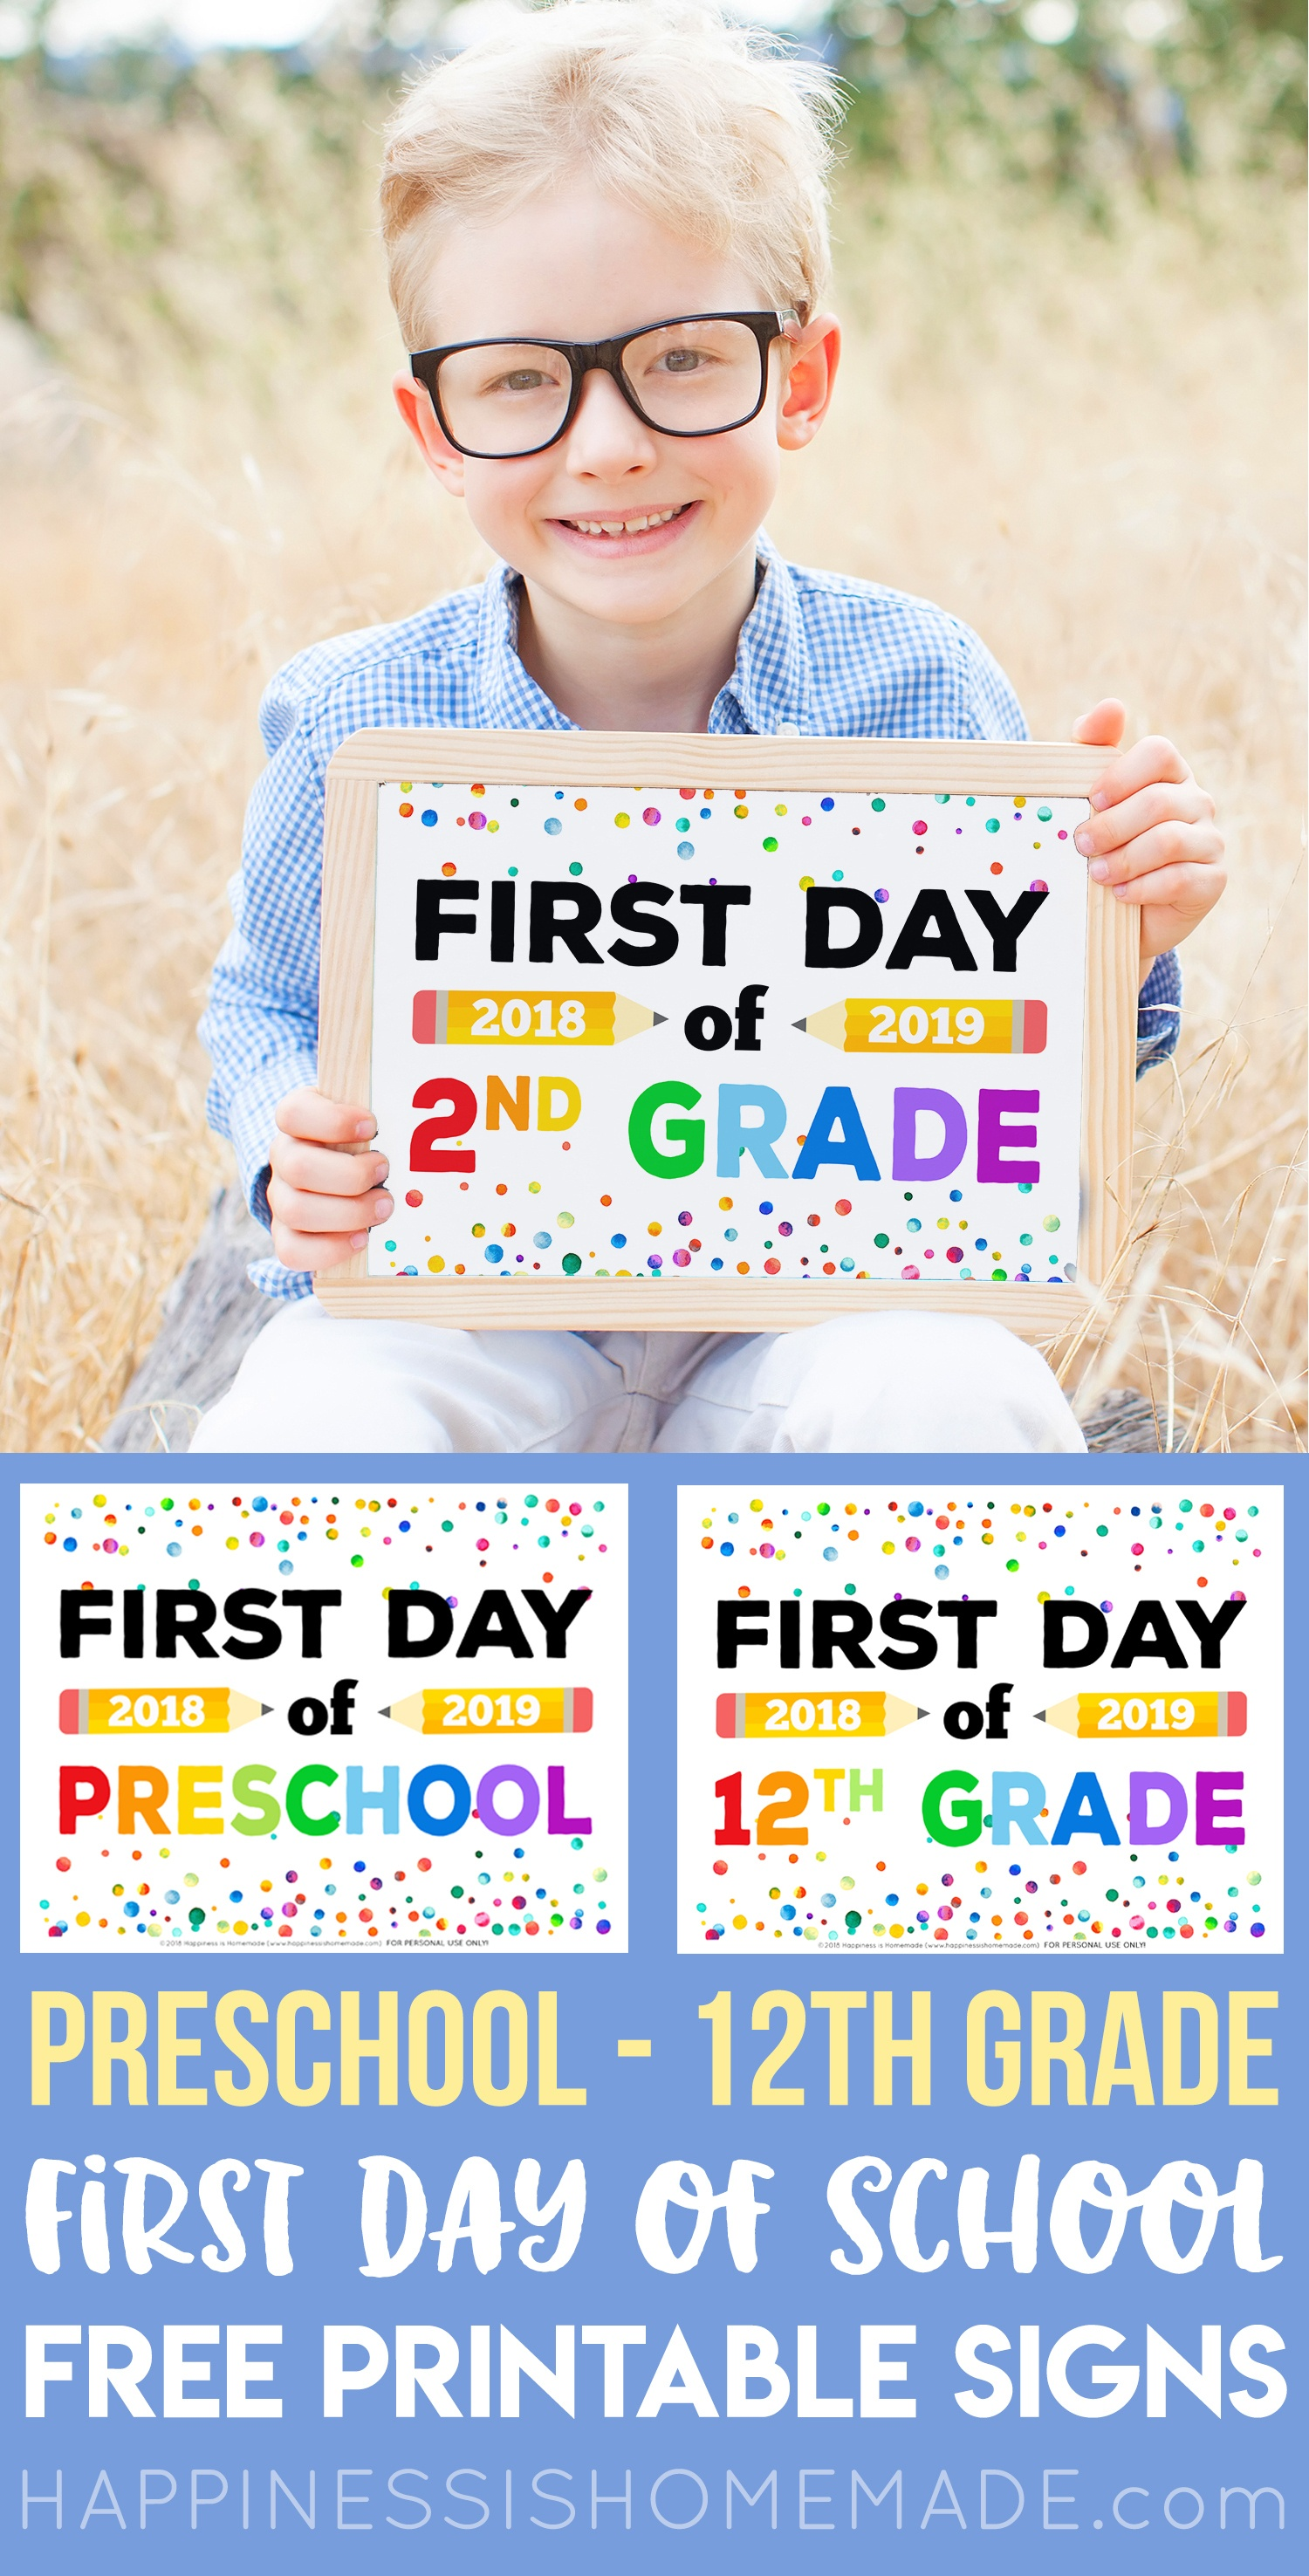 First Day Of School Signs - Free Printables - Happiness Is Homemade - First Day Of School Sign Free Printable